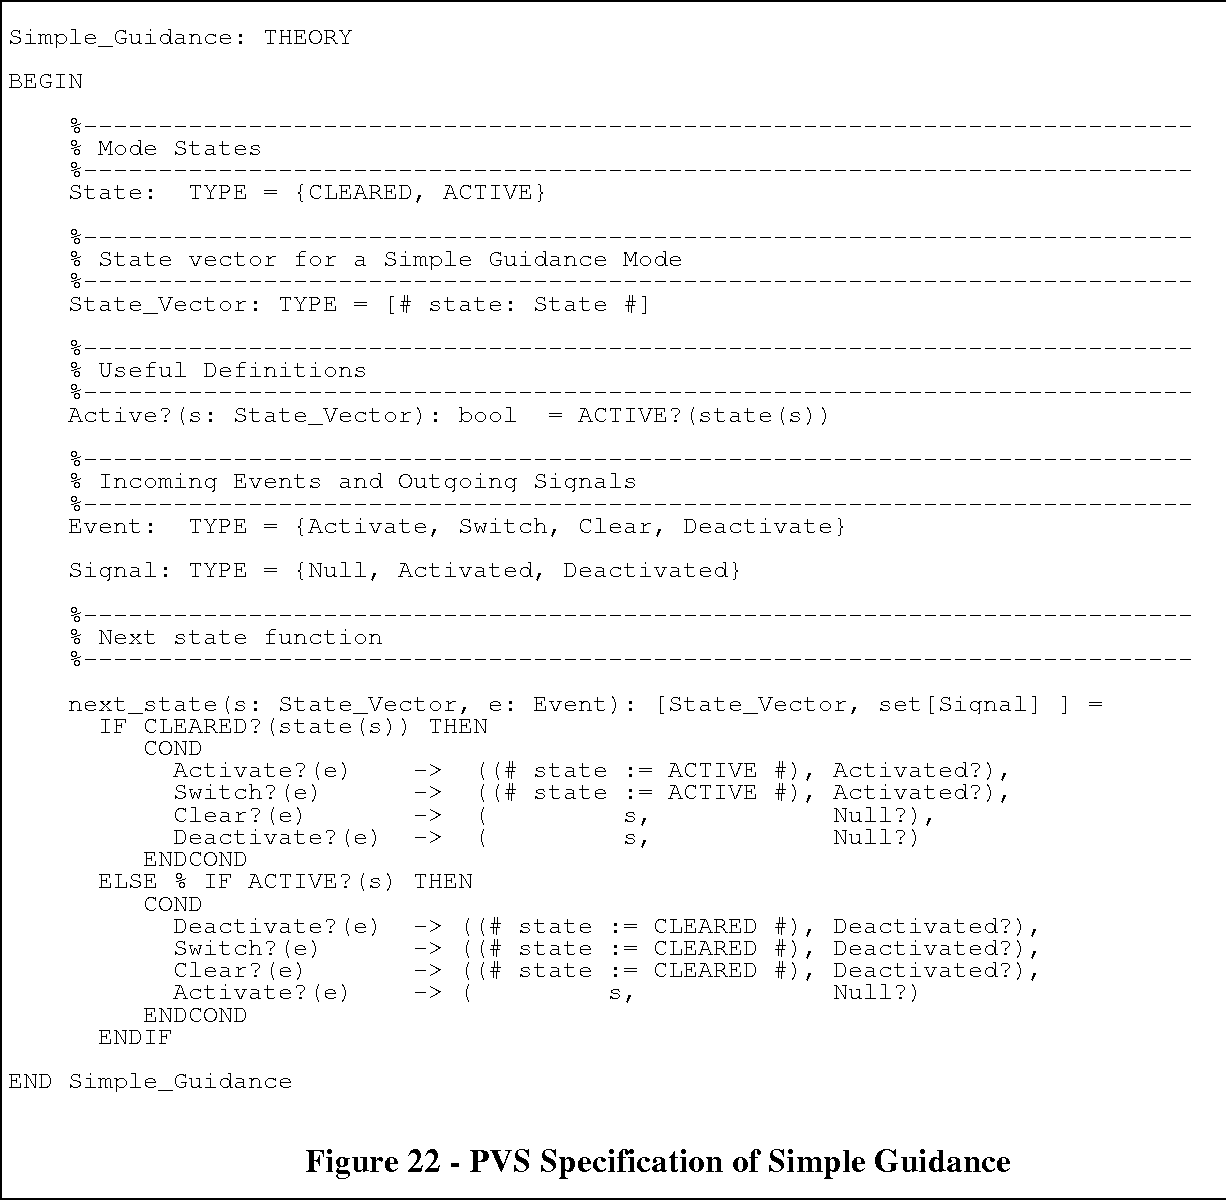 Figure 22 - PVS Specification of Simple Guidance